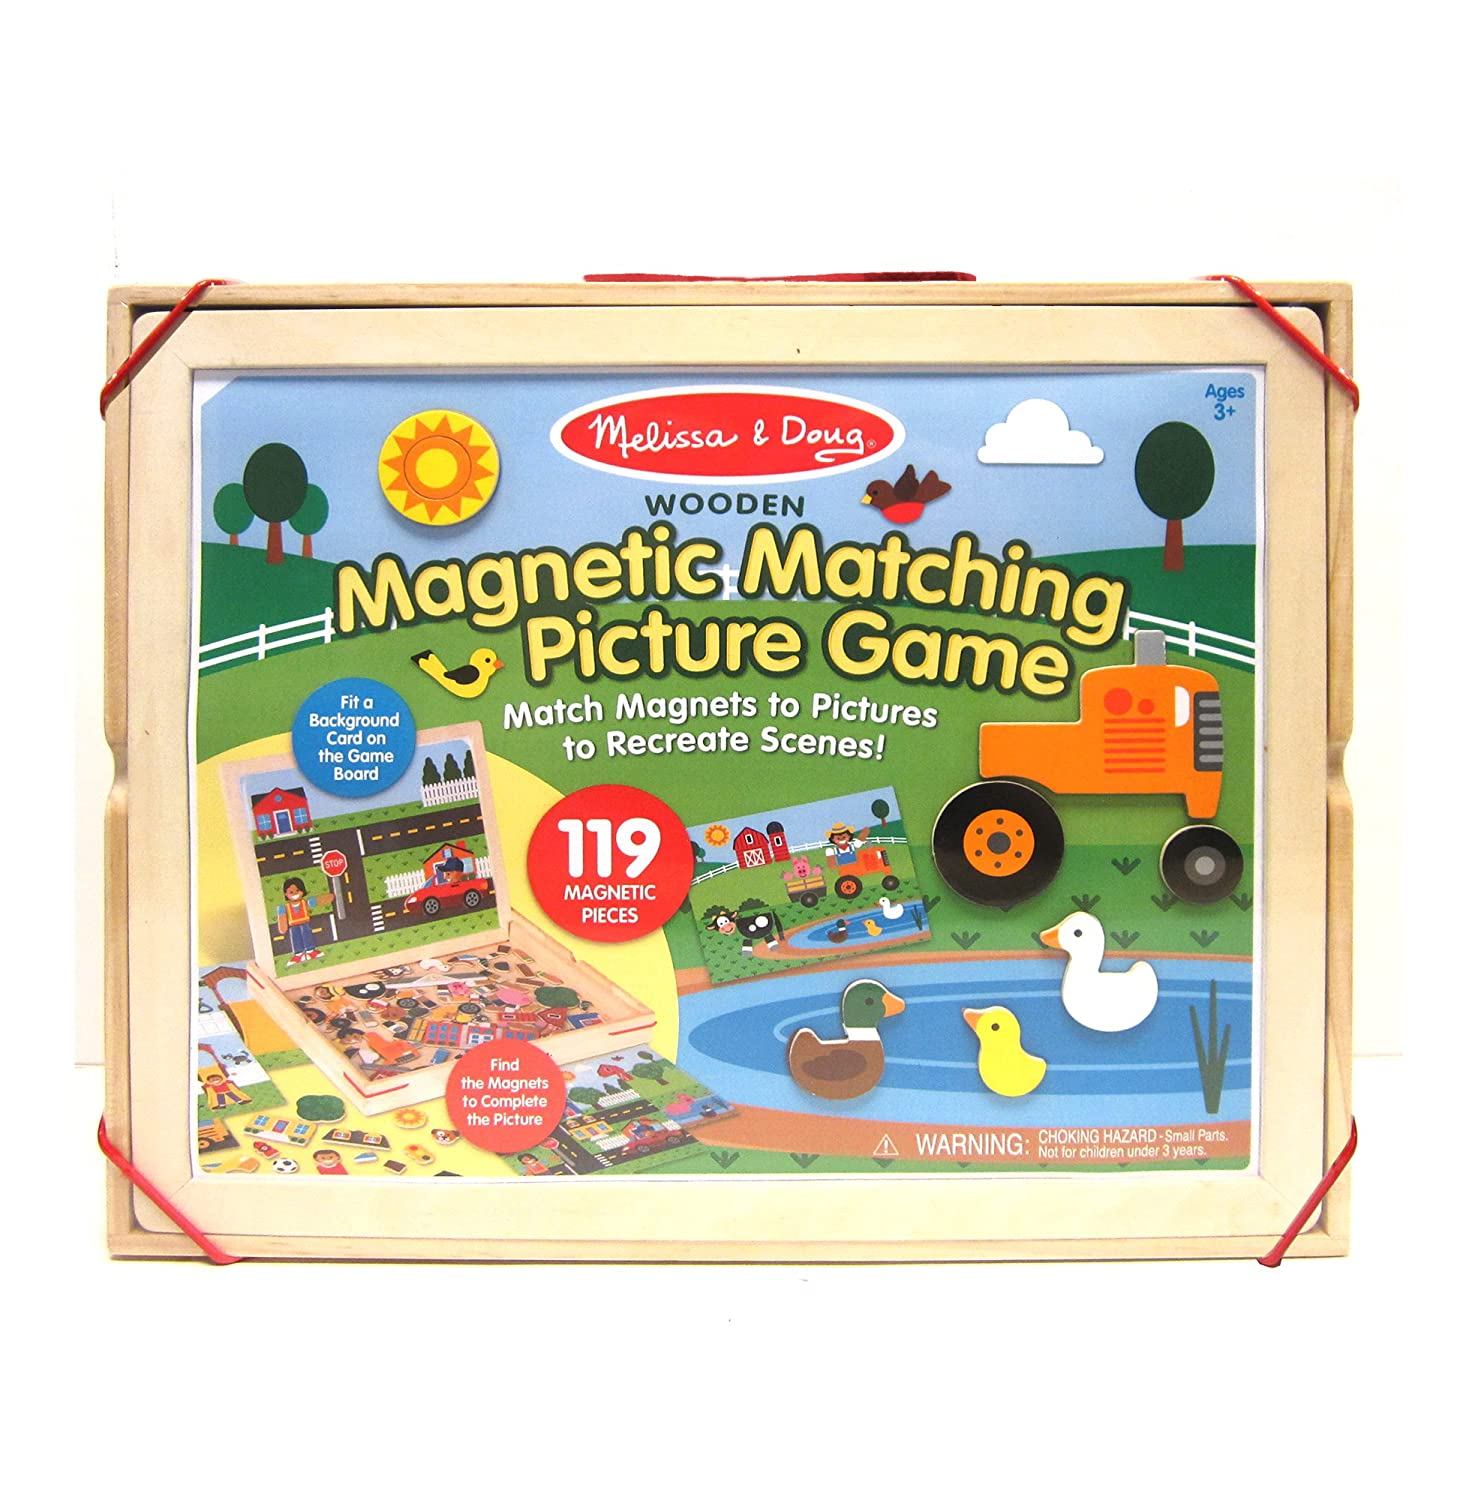 Amazon.com: Melissa & Doug Wooden Magnetic Matching Picture Game ...